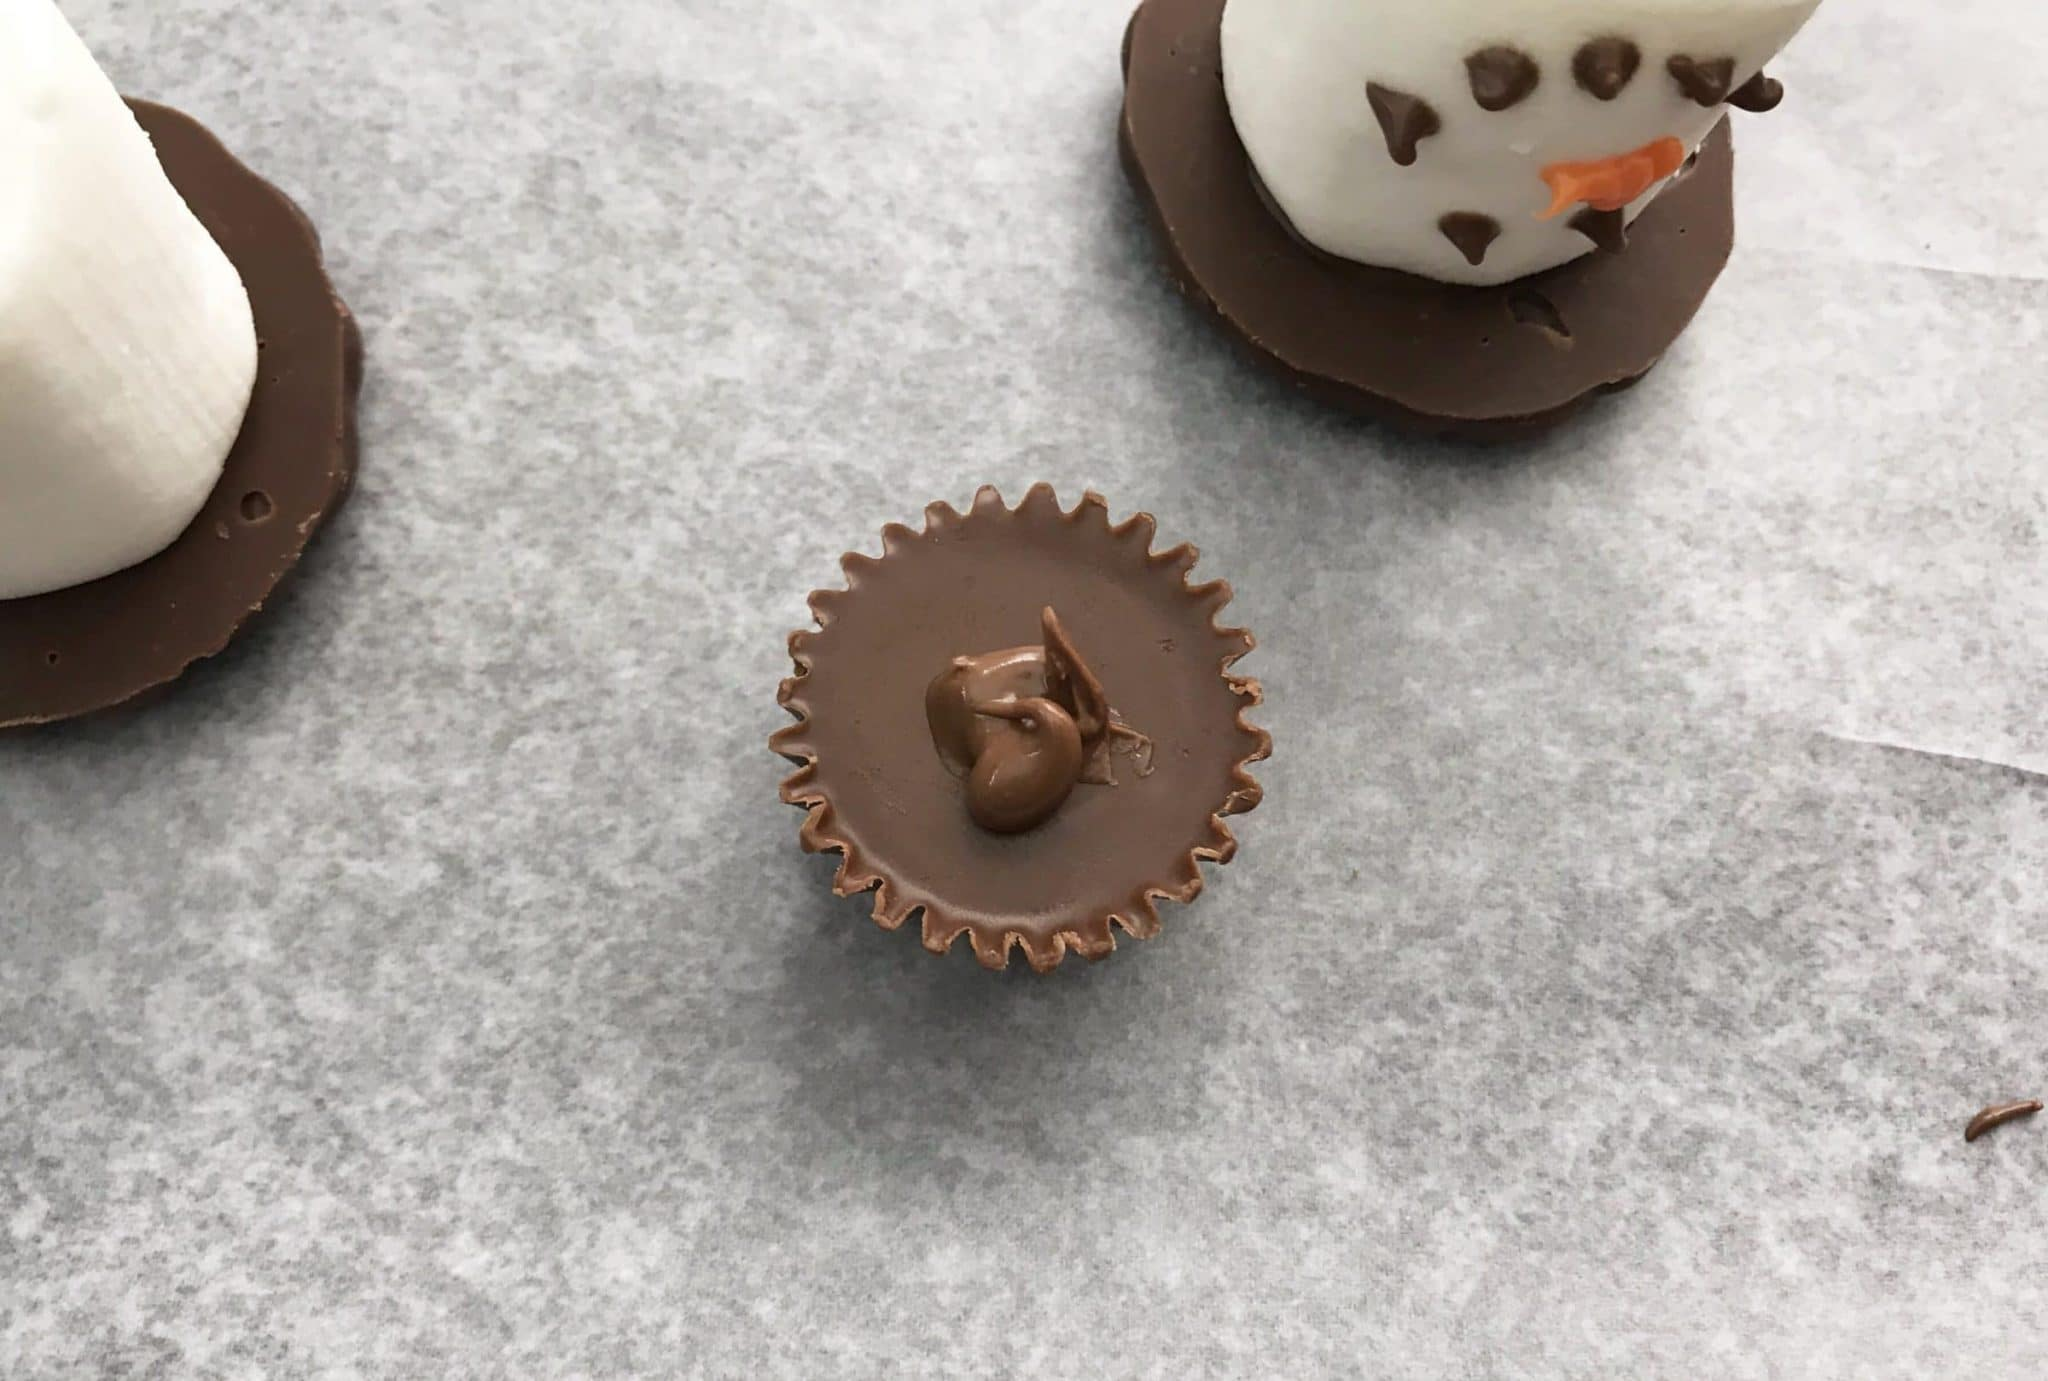 Do you want to build a snowman? Stay inside where it is warm and toasty and make these adorable marshmallow snowman treats. Kids will have a blast helping decorate and making their own little snowmen that they can nibble on later.